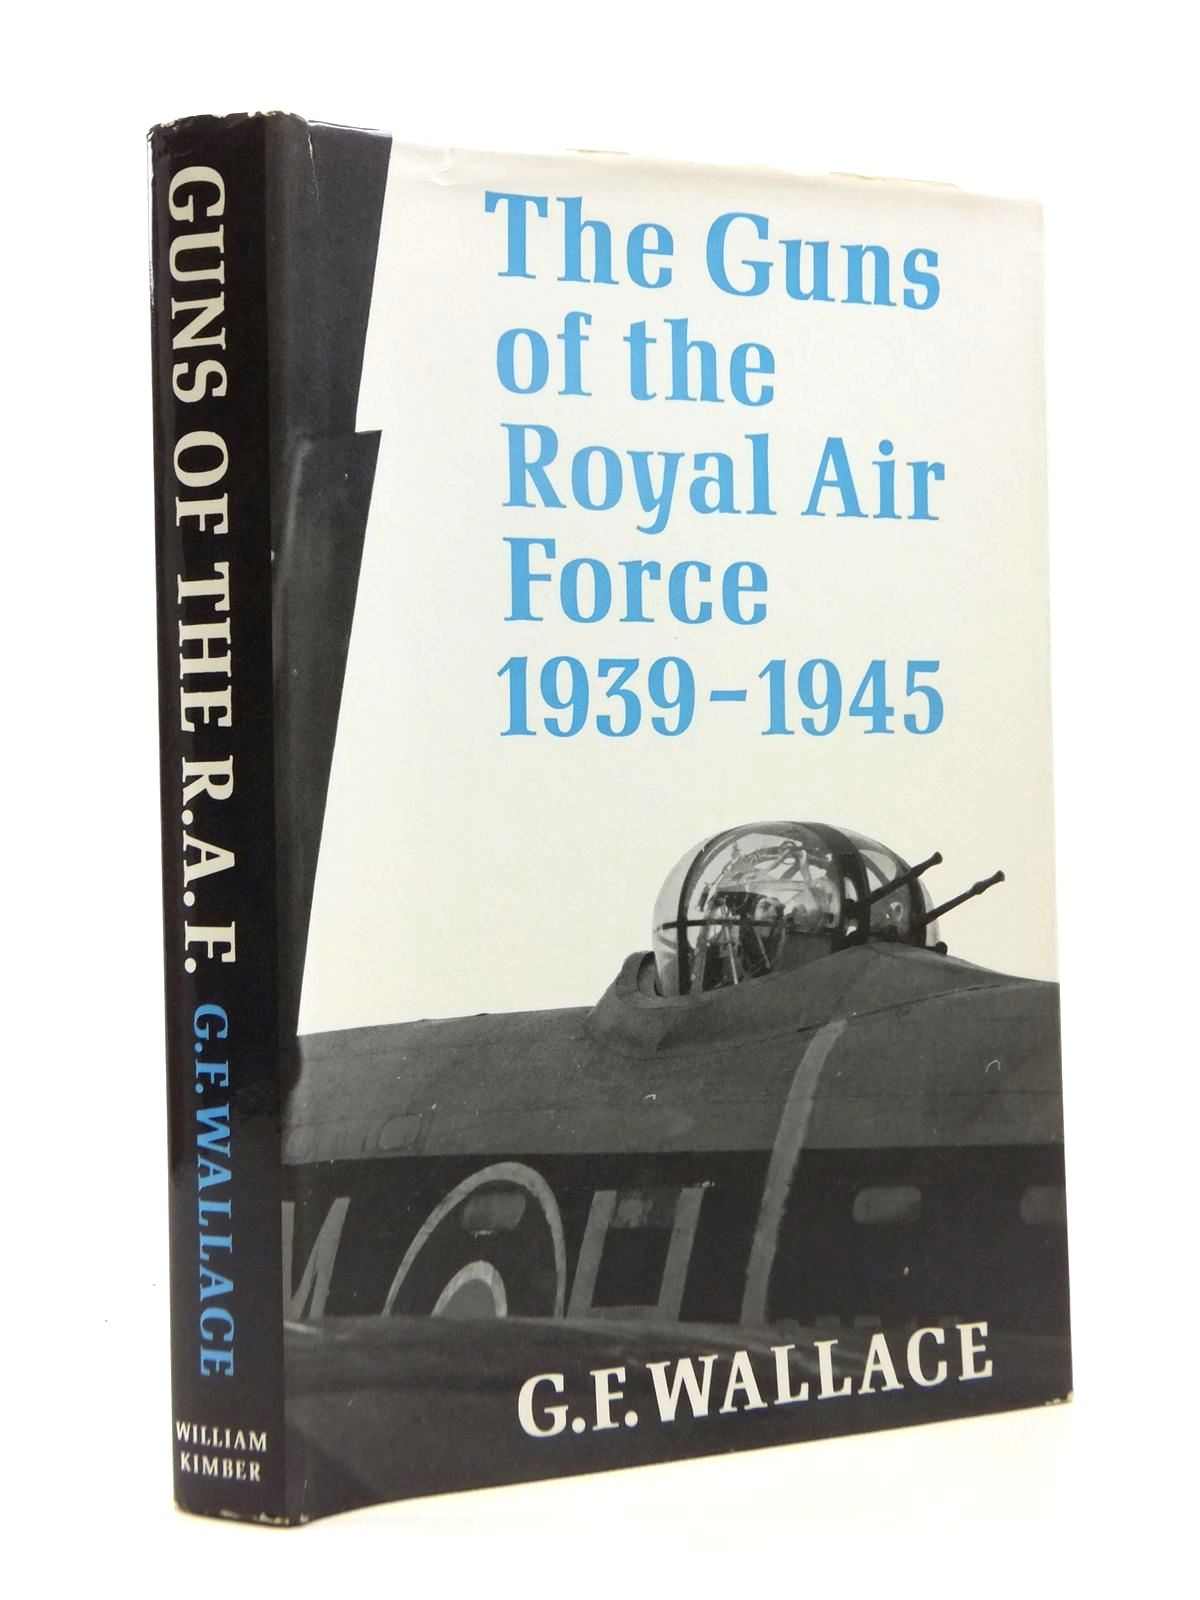 Photo of THE GUNS OF THE ROYAL AIR FORCE 1939-1945 written by Wallace, G.F. published by William Kimber (STOCK CODE: 1208463)  for sale by Stella & Rose's Books